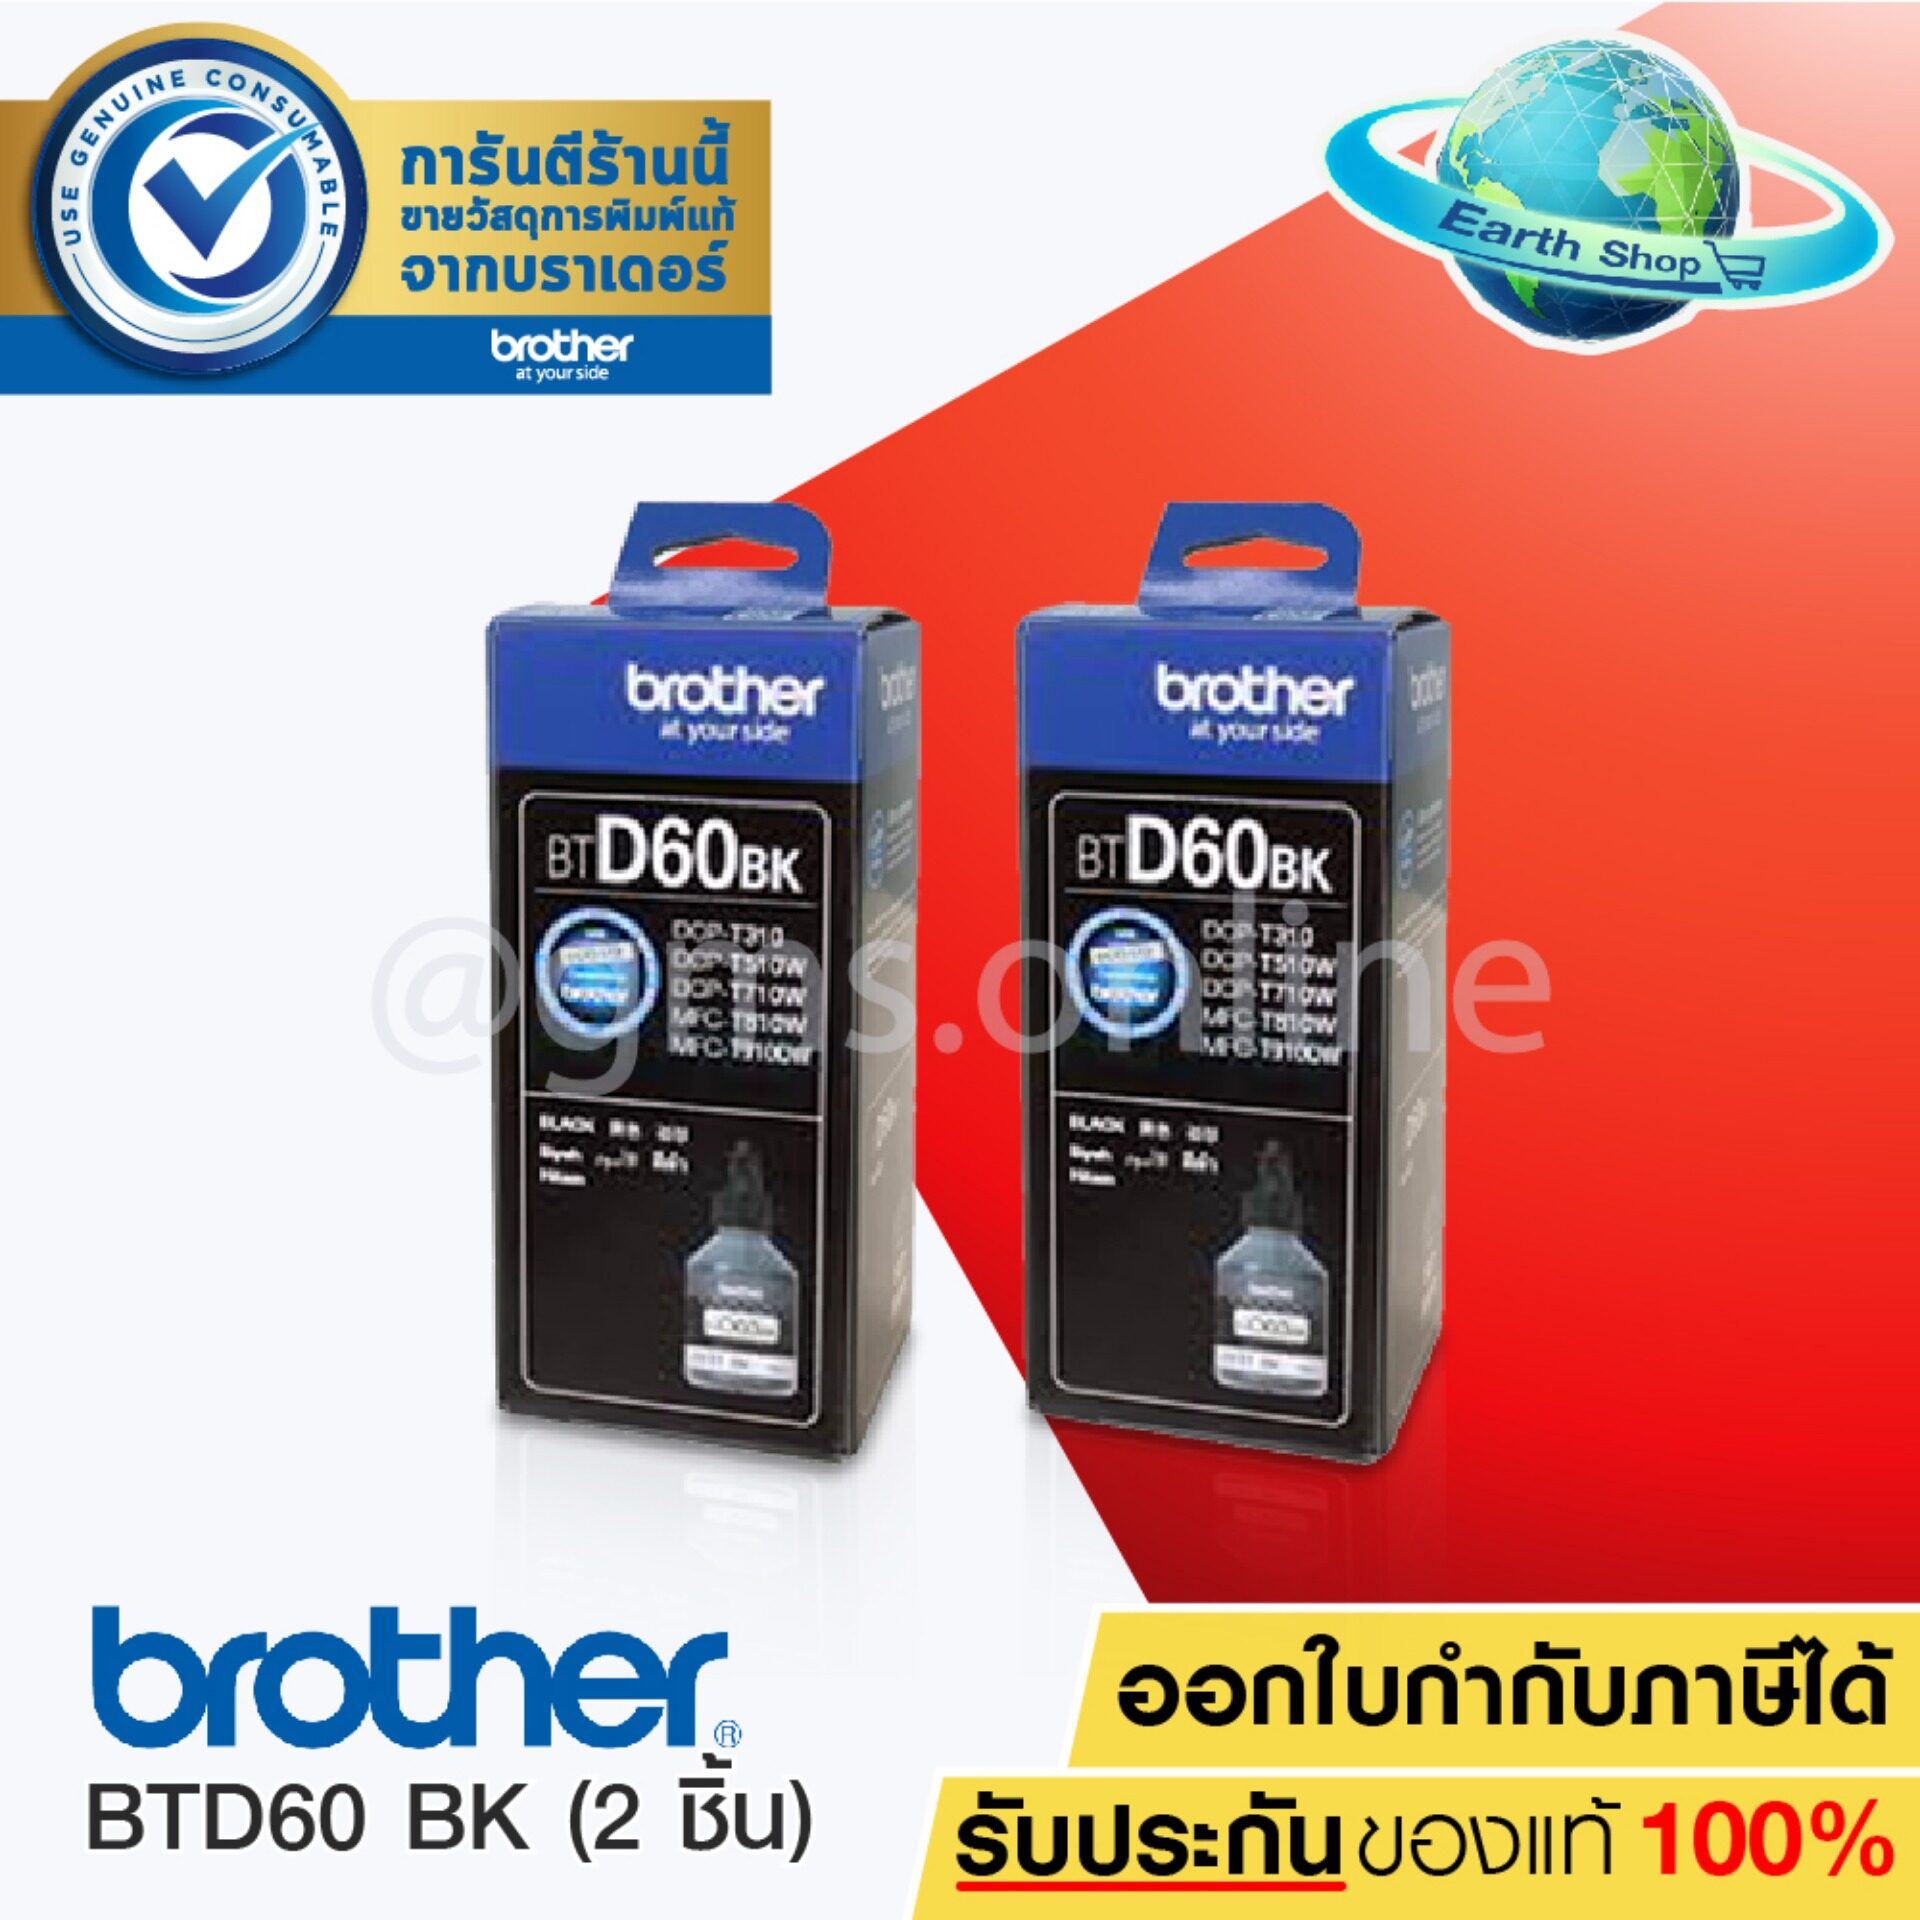 Brother Bt-D60bk สีดำ จำนวน 2 กล่อง (รับประกันของแท้)dcp-T310/ T510w/ T710w, Mfc-T810w Earth Shop.